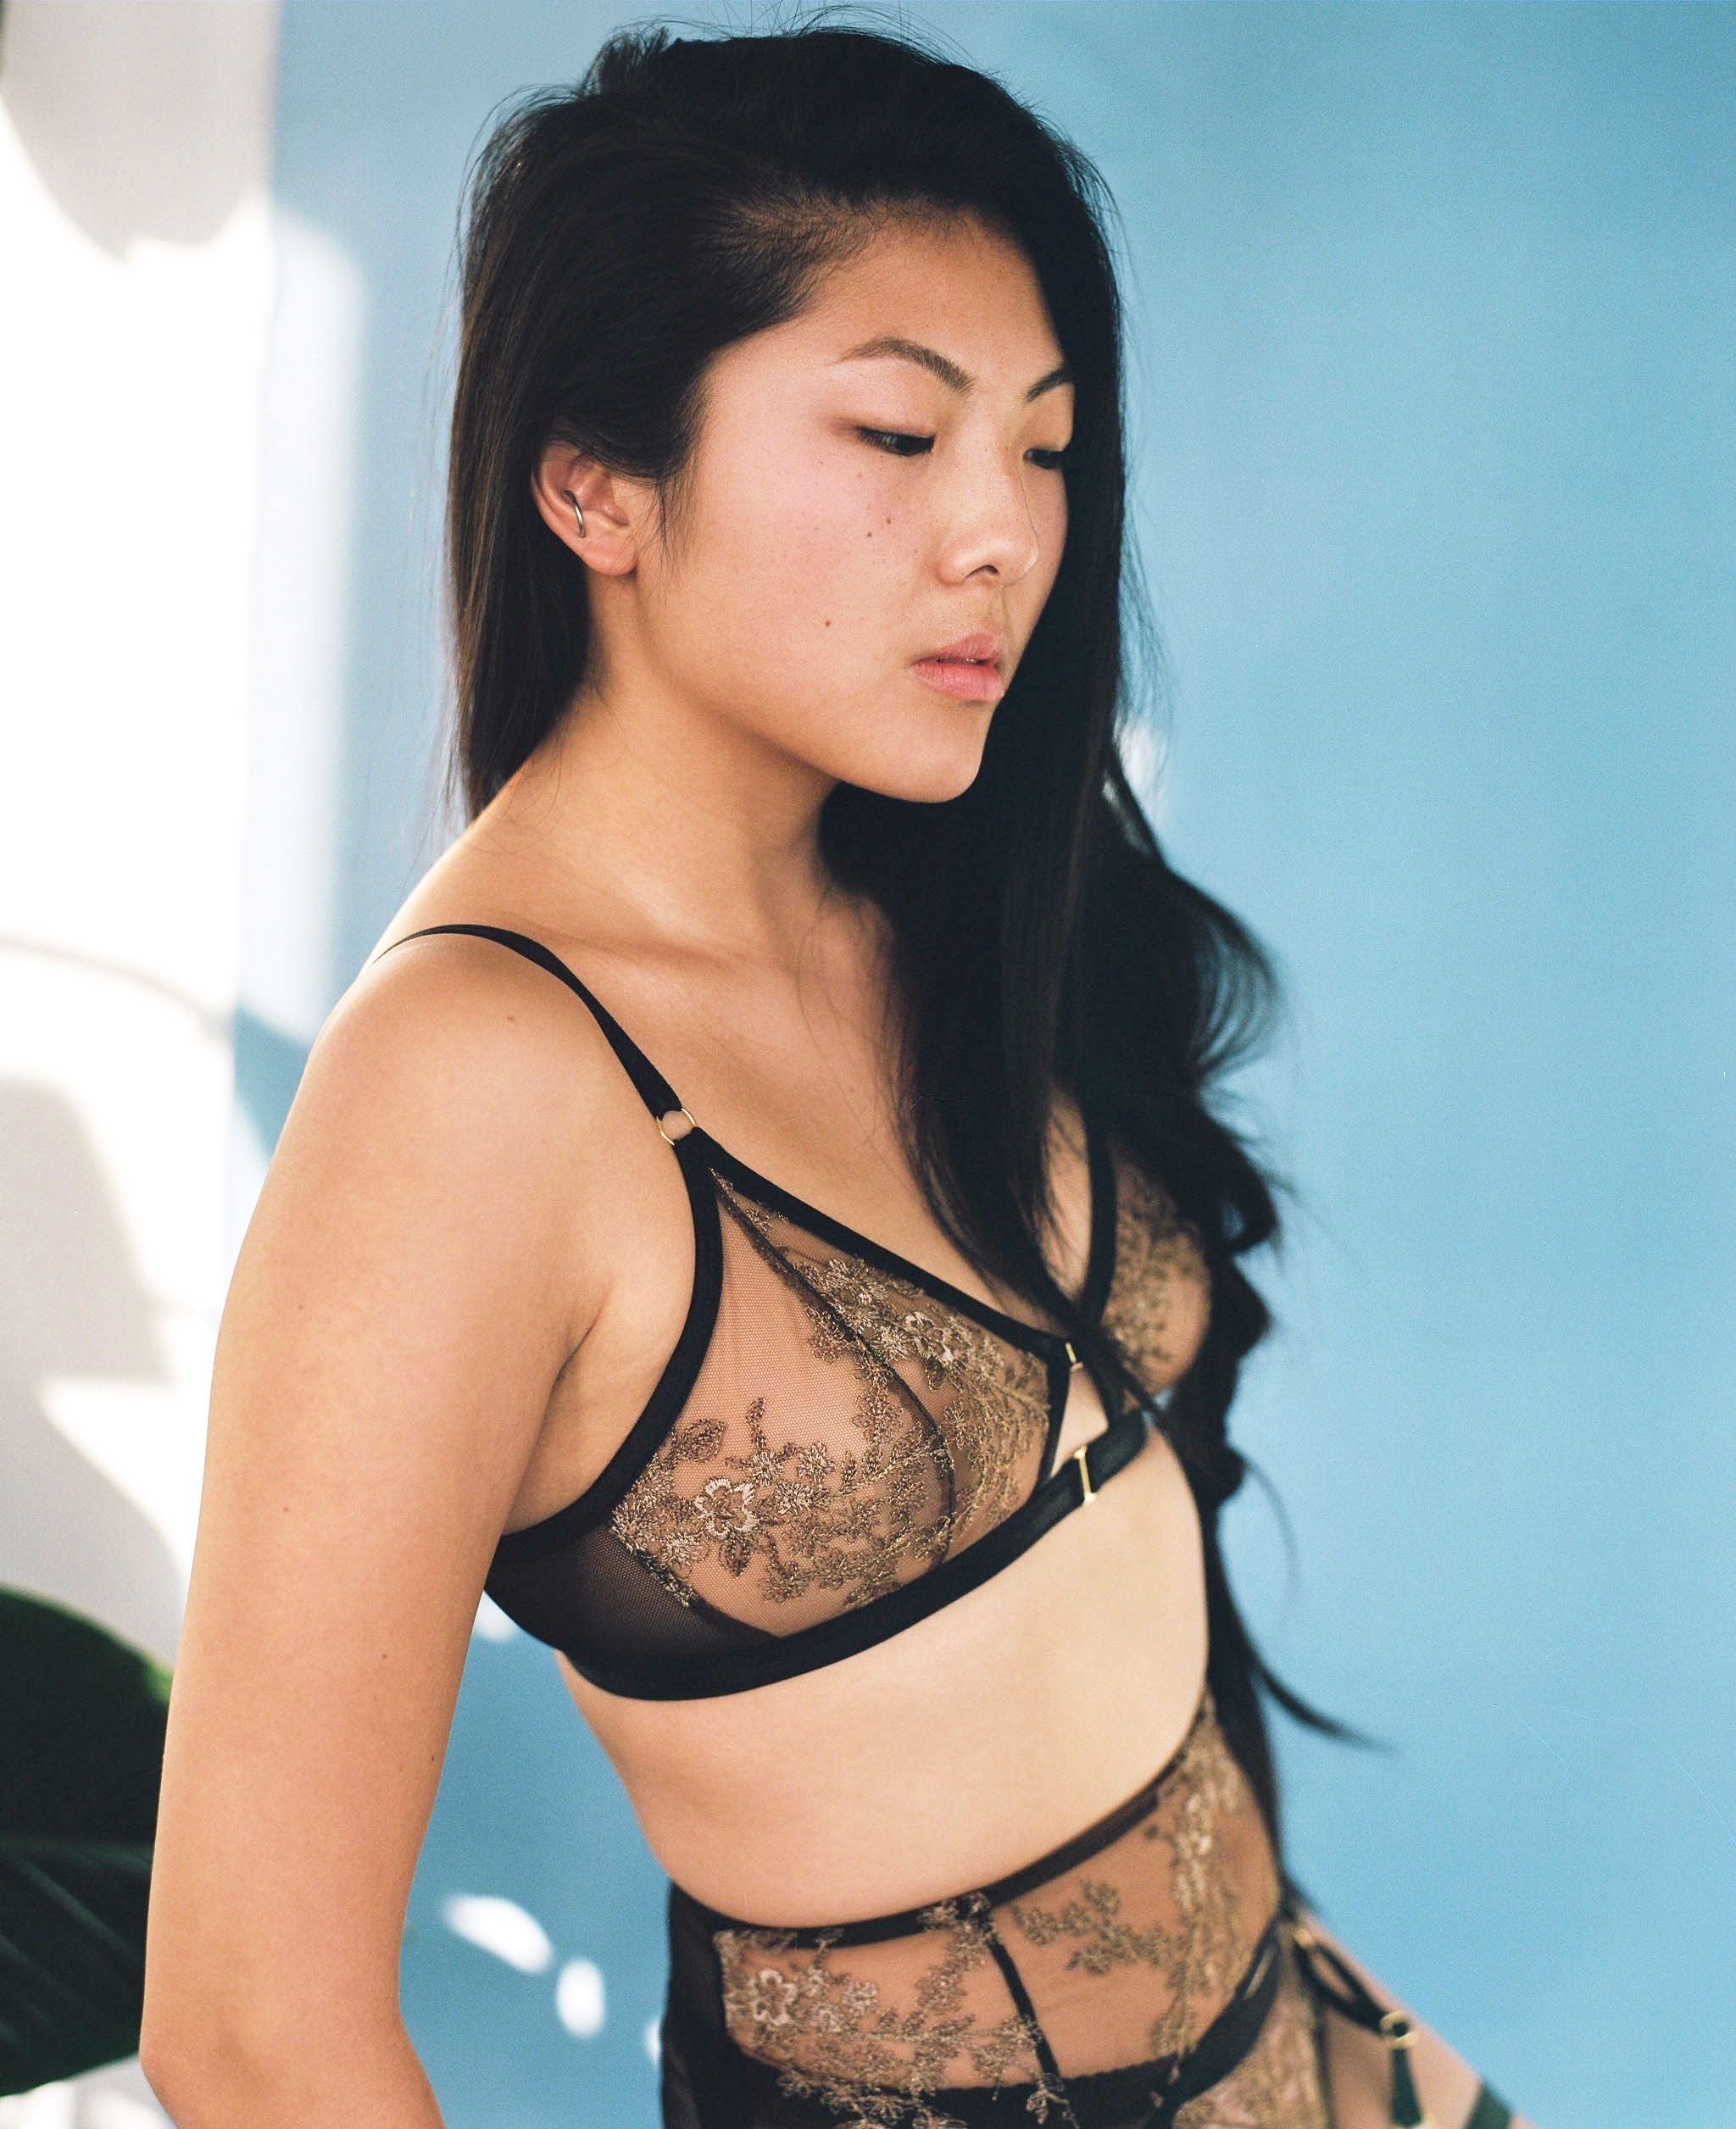 bf810dbba95ed Ellesmere Lingerie  Where Inner Meets Outer Beauty Triangle Bra